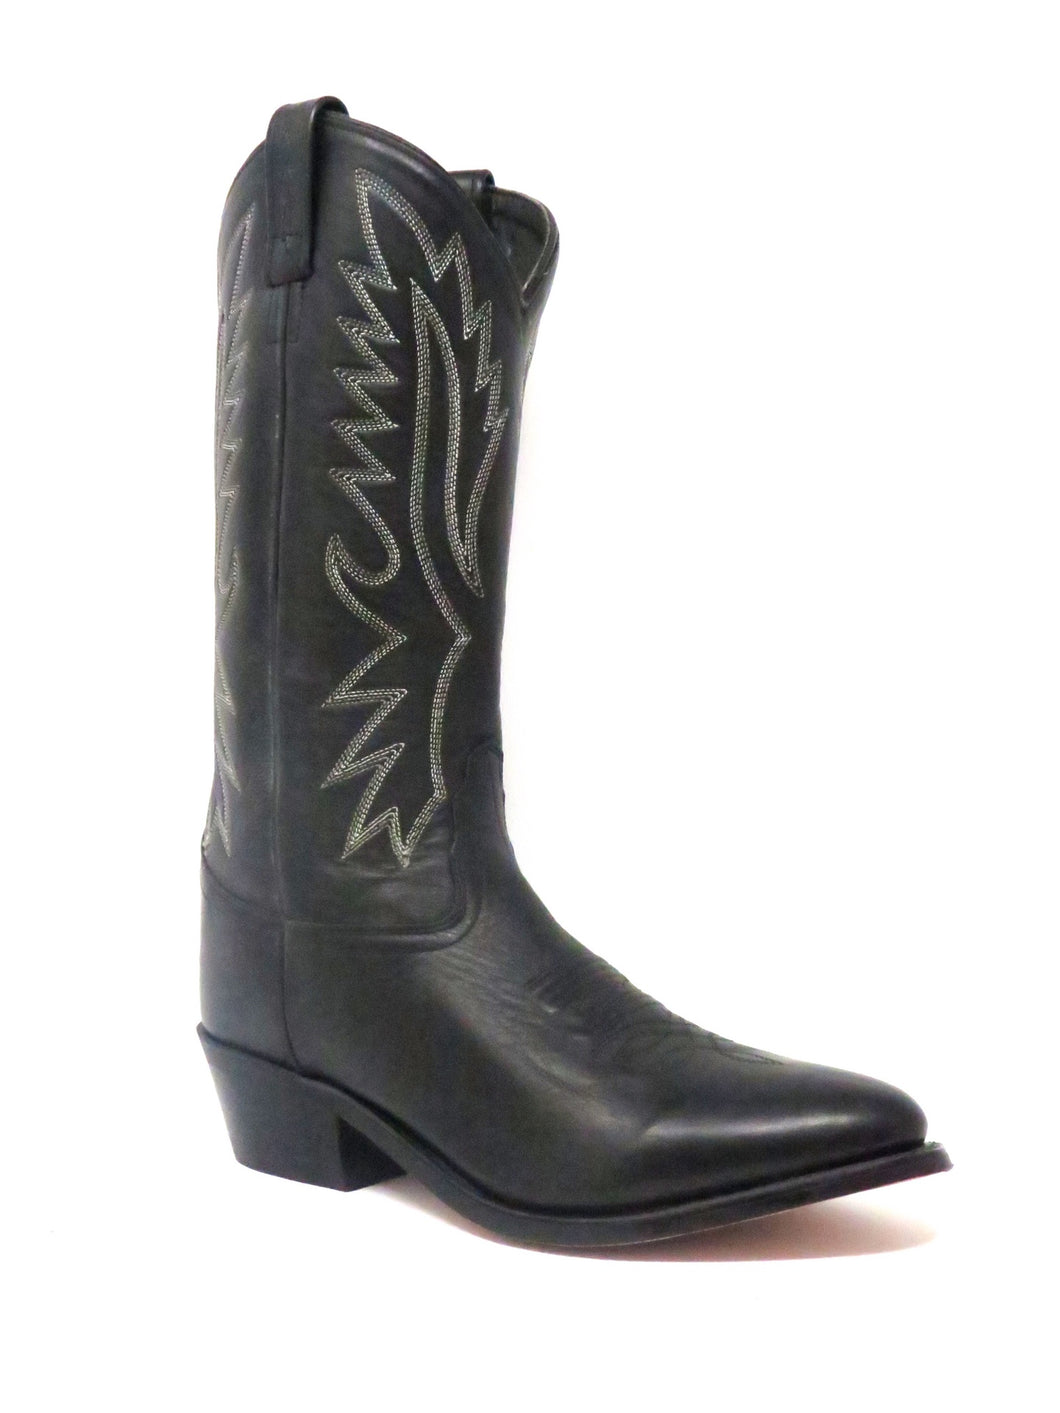 Old West | OW2010 | Western Boot | Black